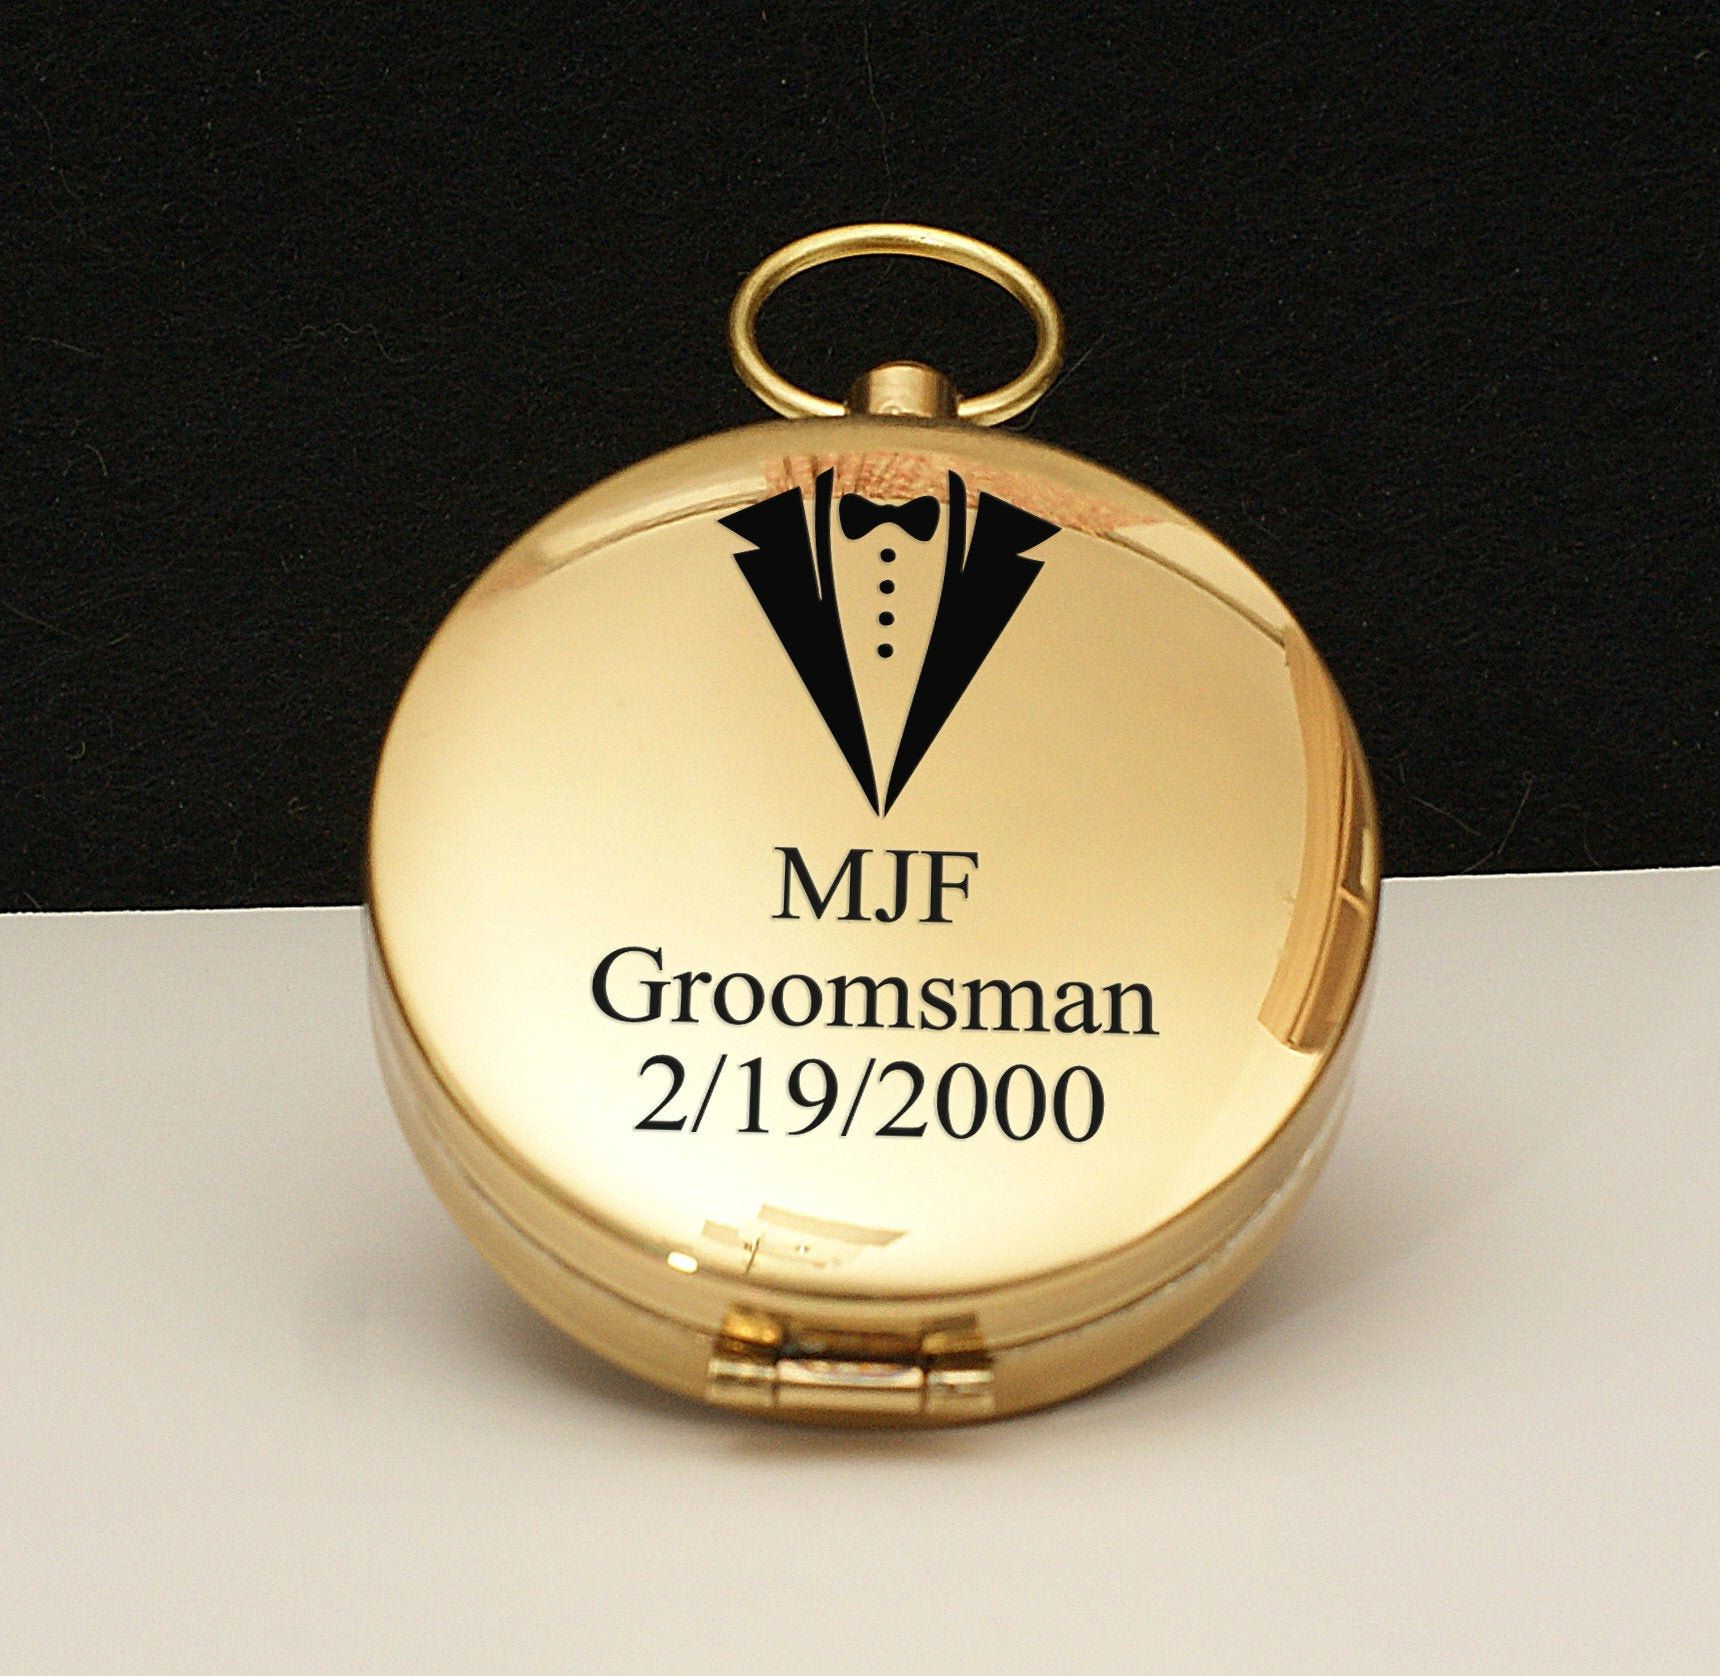 Grooms Gift Idea, Mens Gift, Engraved Travel Compass